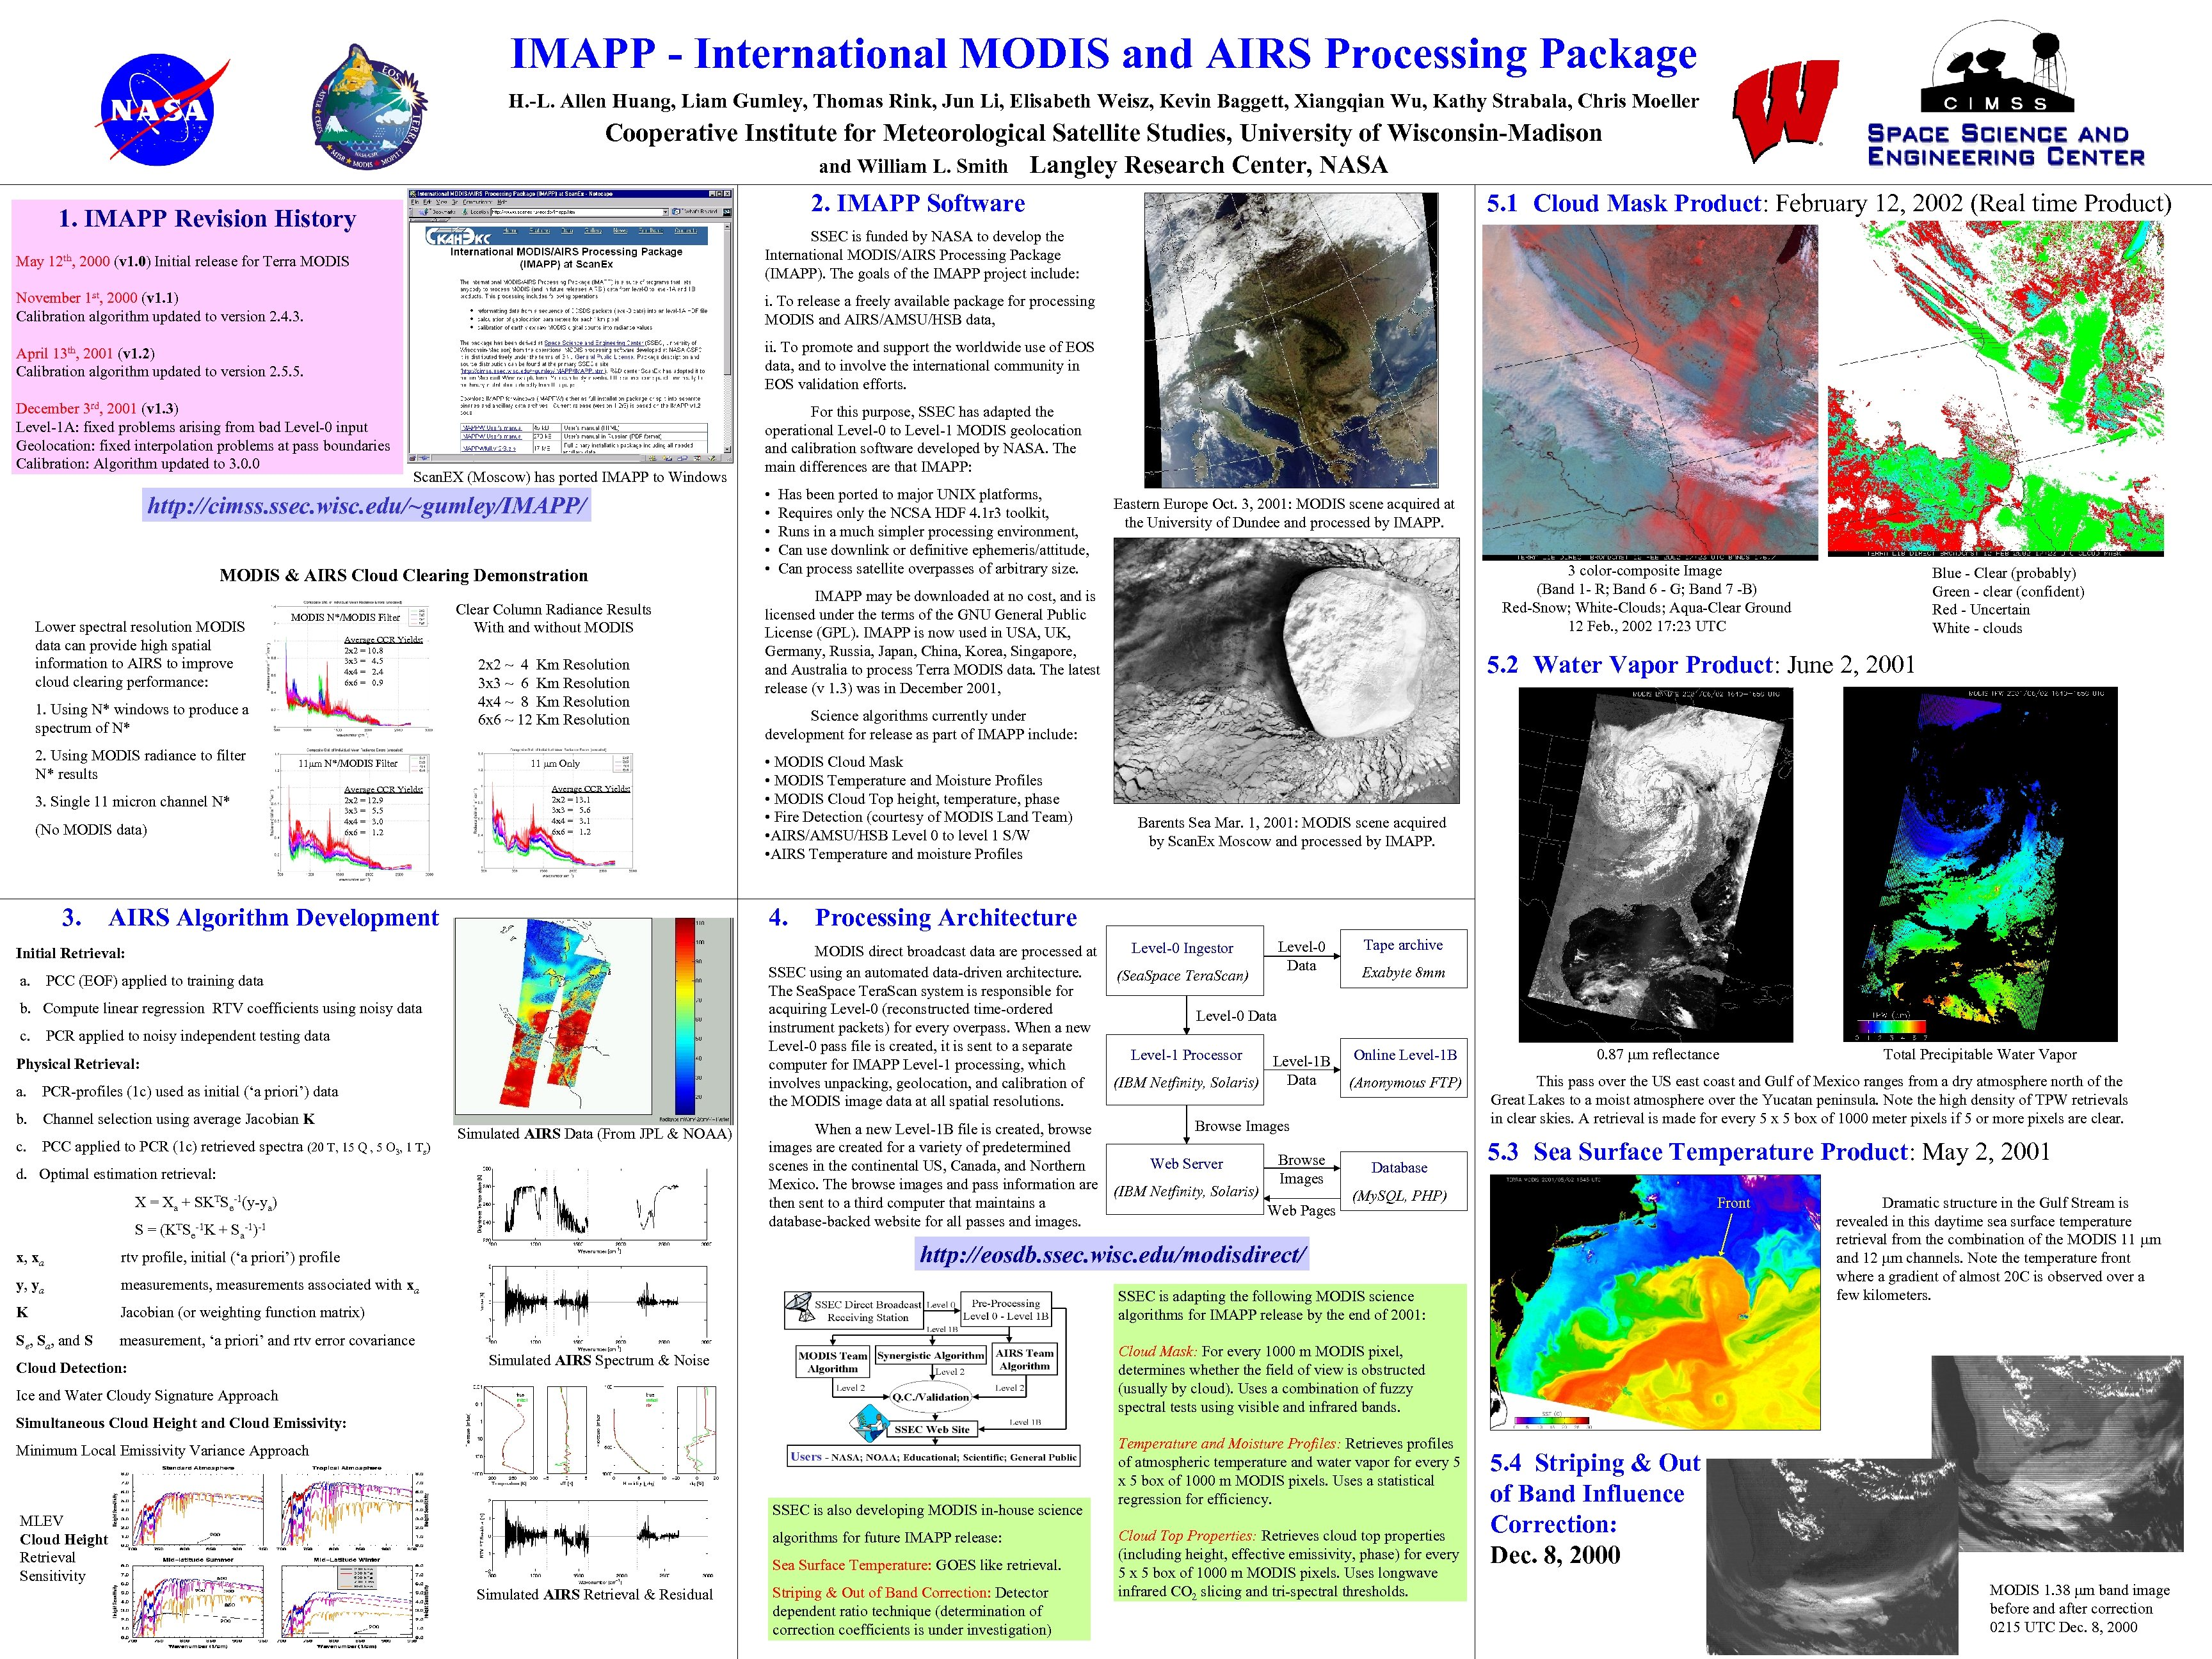 IMAPP - International MODIS and AIRS Processing Package H. -L. Allen Huang, Liam Gumley,